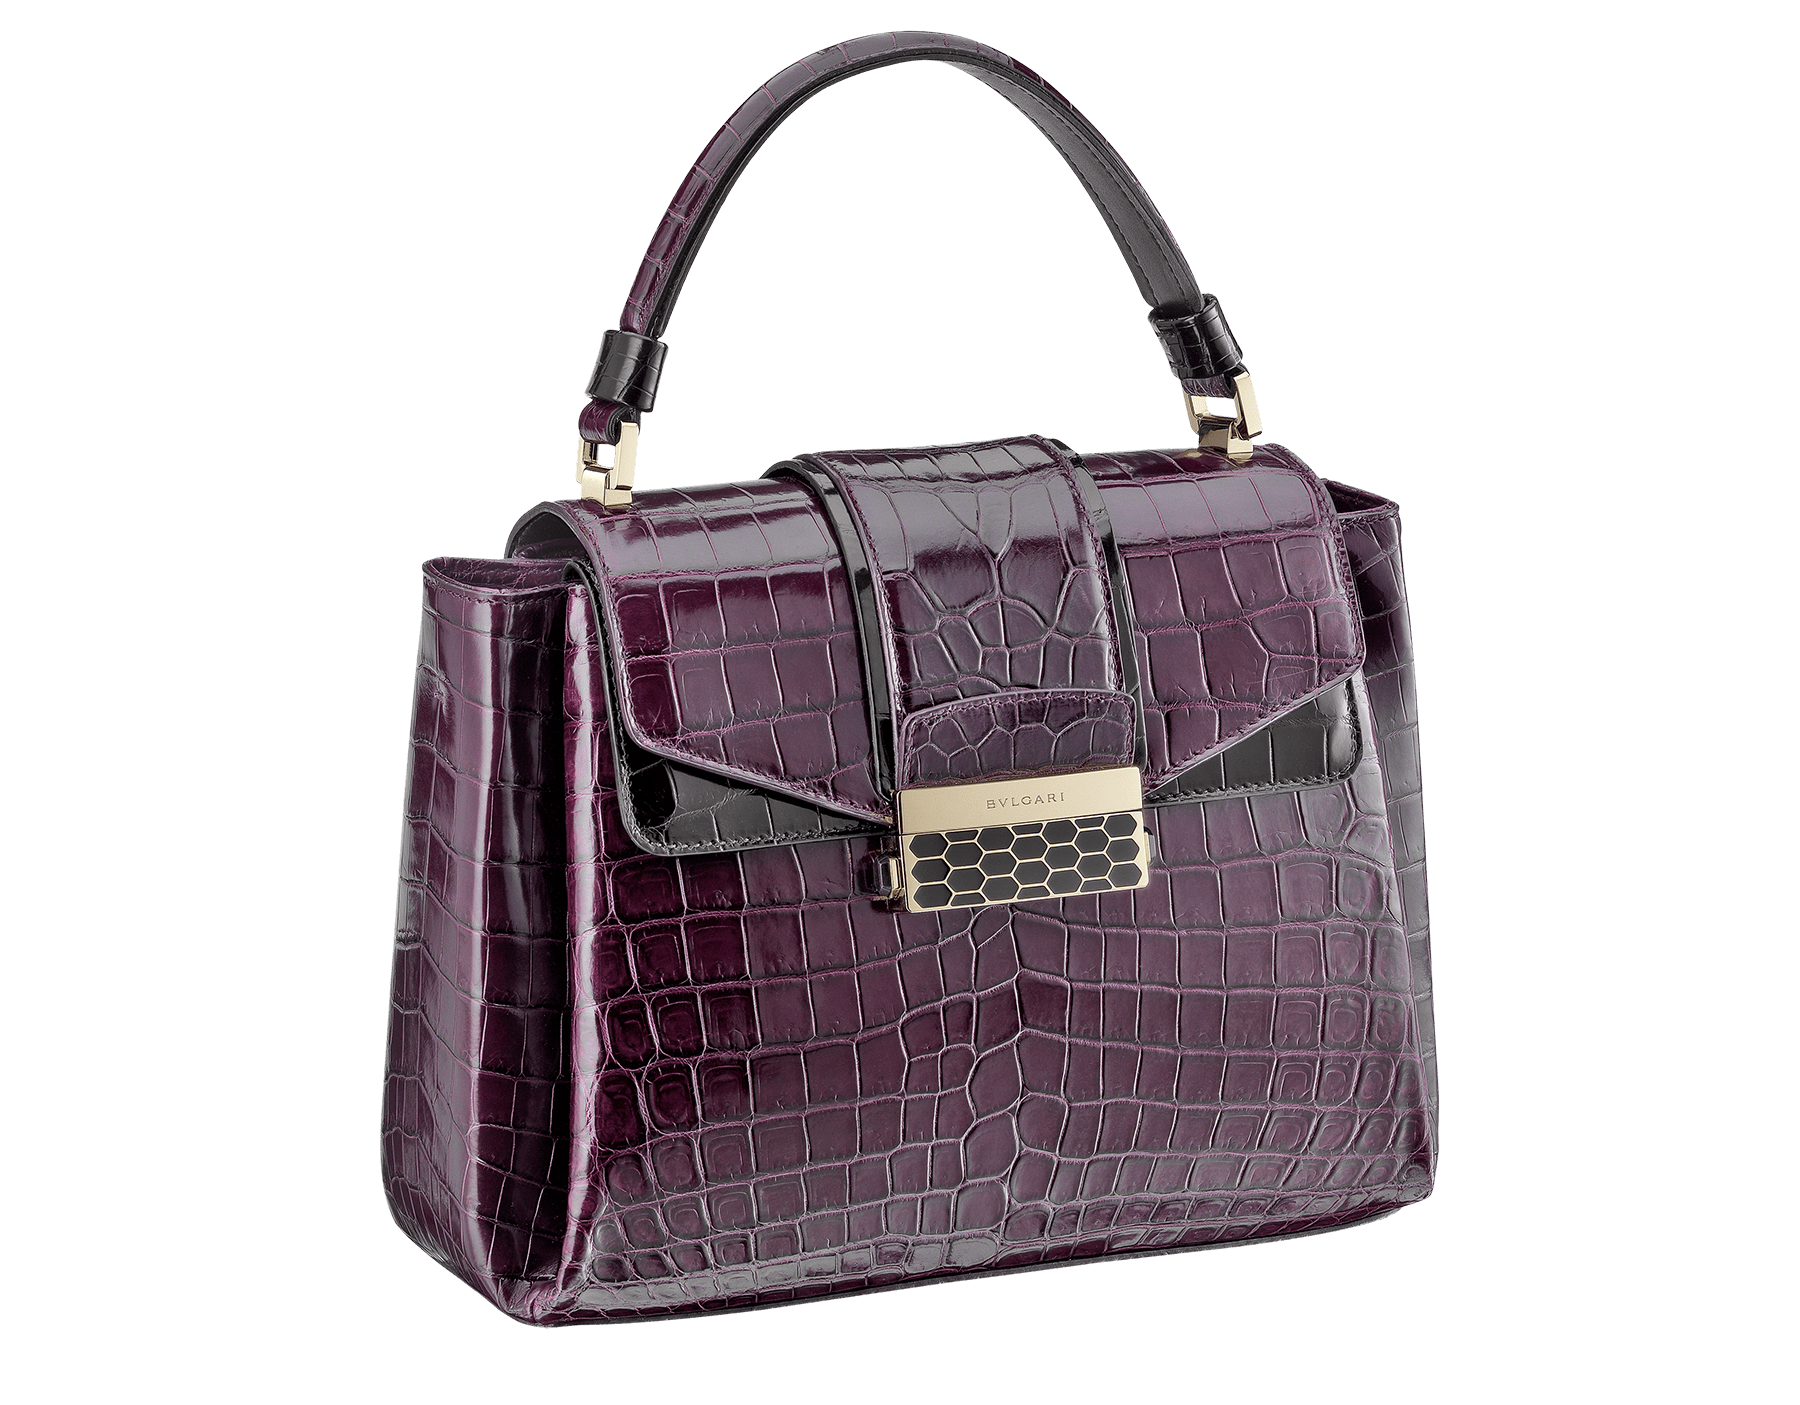 Top handle bag Serpenti Viper in plum amethyst and black shiny crocodile skin. Brass light gold plated hardware and snap closure in black shiny enamel, with iconic Scaglie design. 281775 image 2